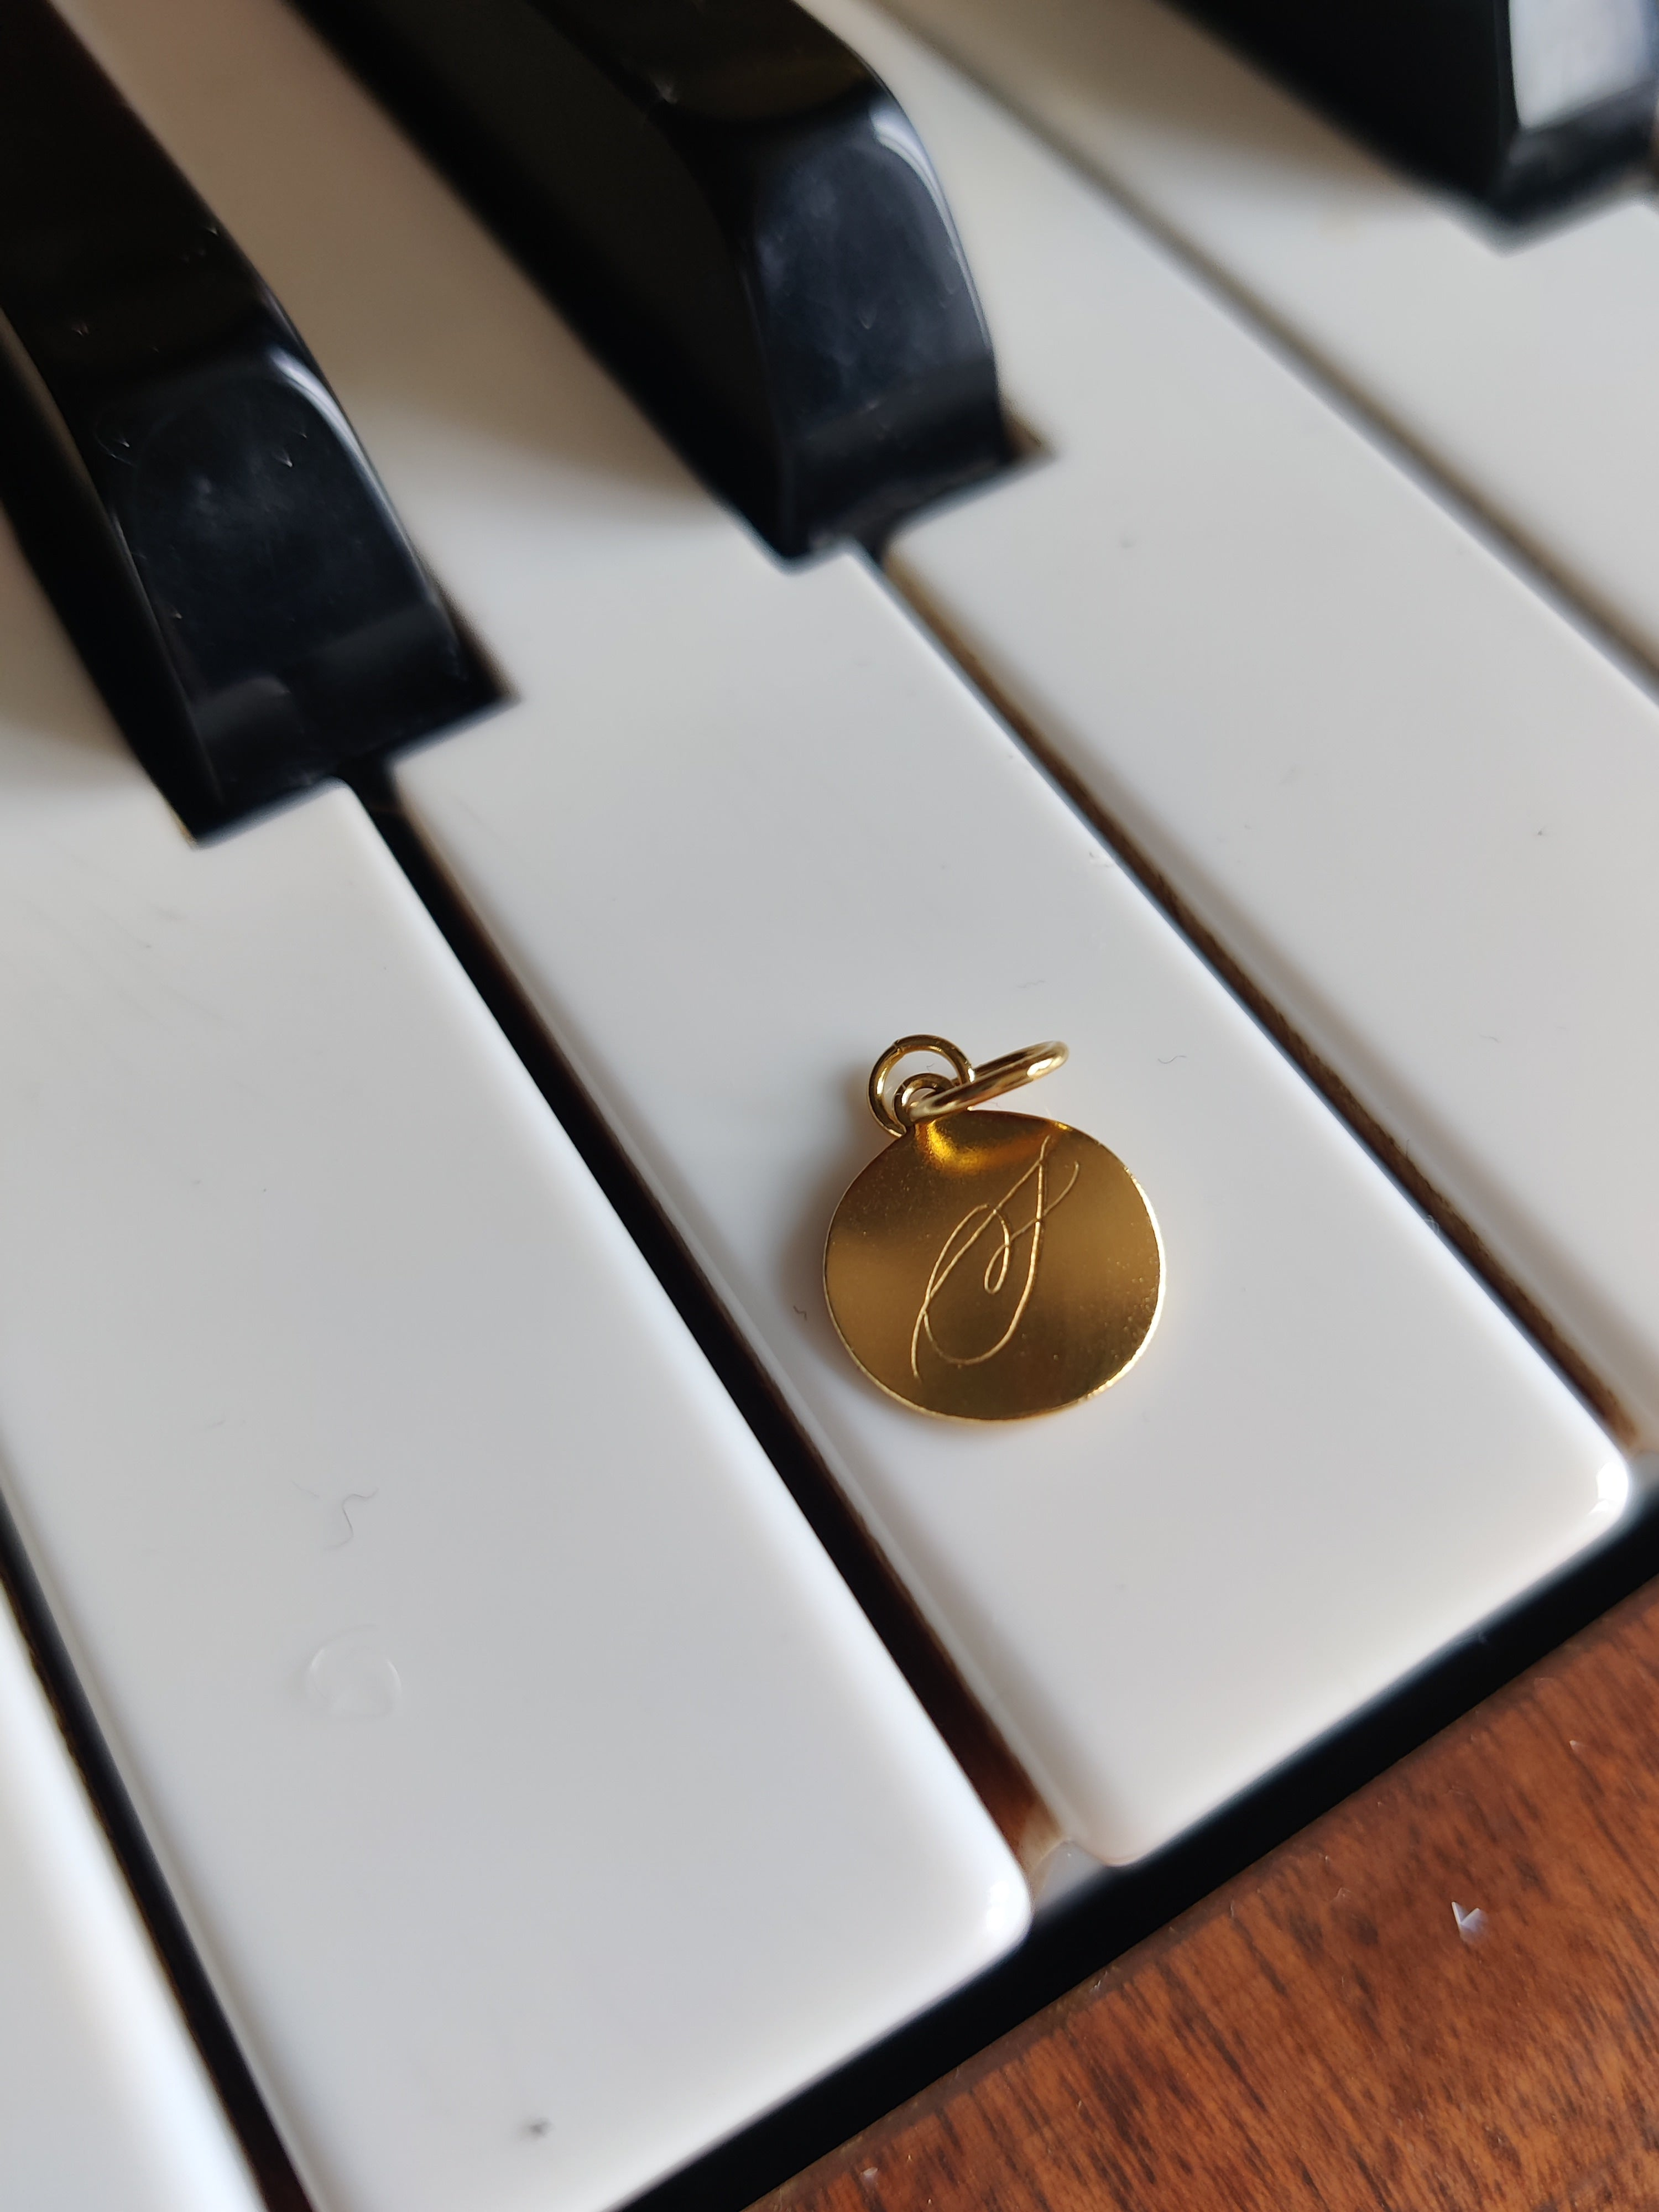 Dreamer coin on Piano